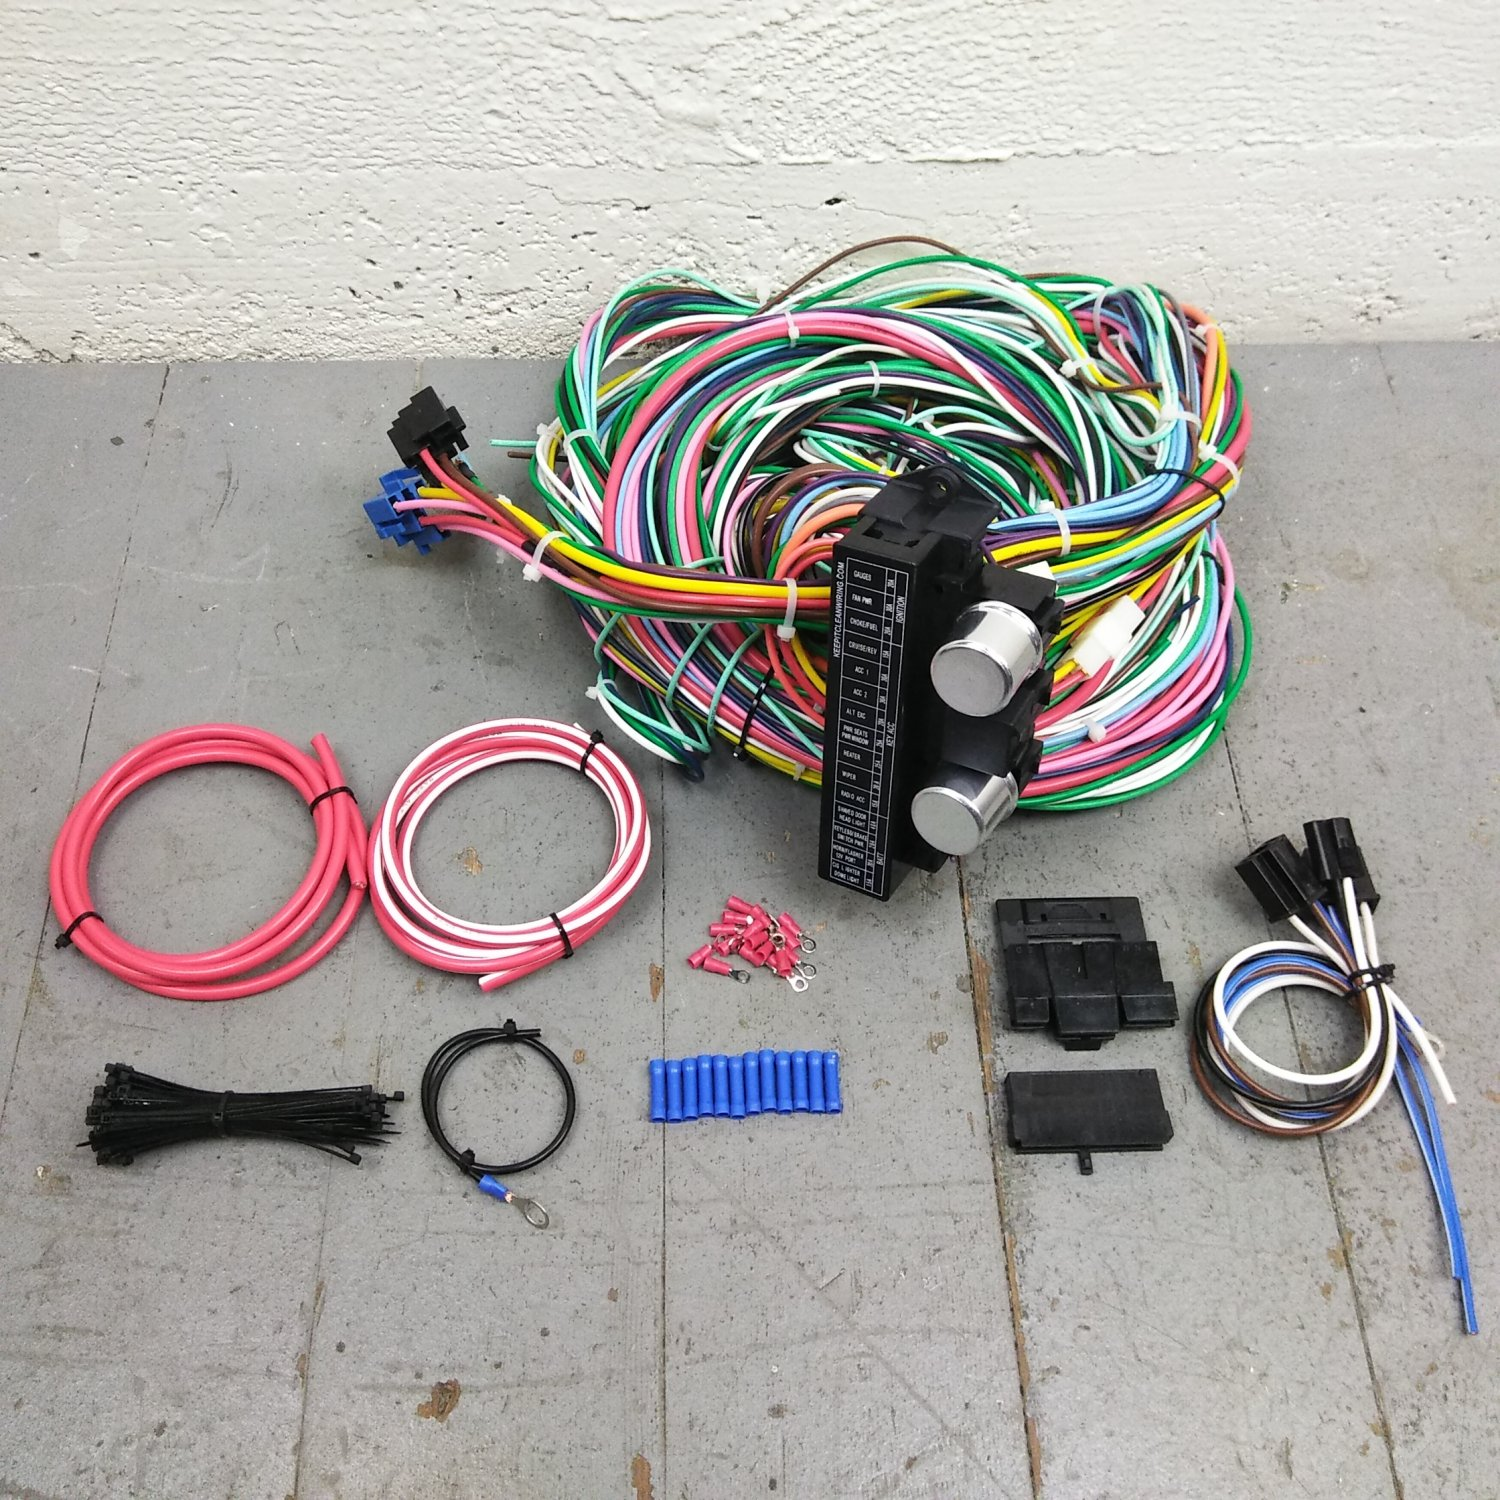 1955 - 1959 Chevy Truck Wire Harness Upgrade Kit fits painless complete  terminal. Bar_Product_Description_C